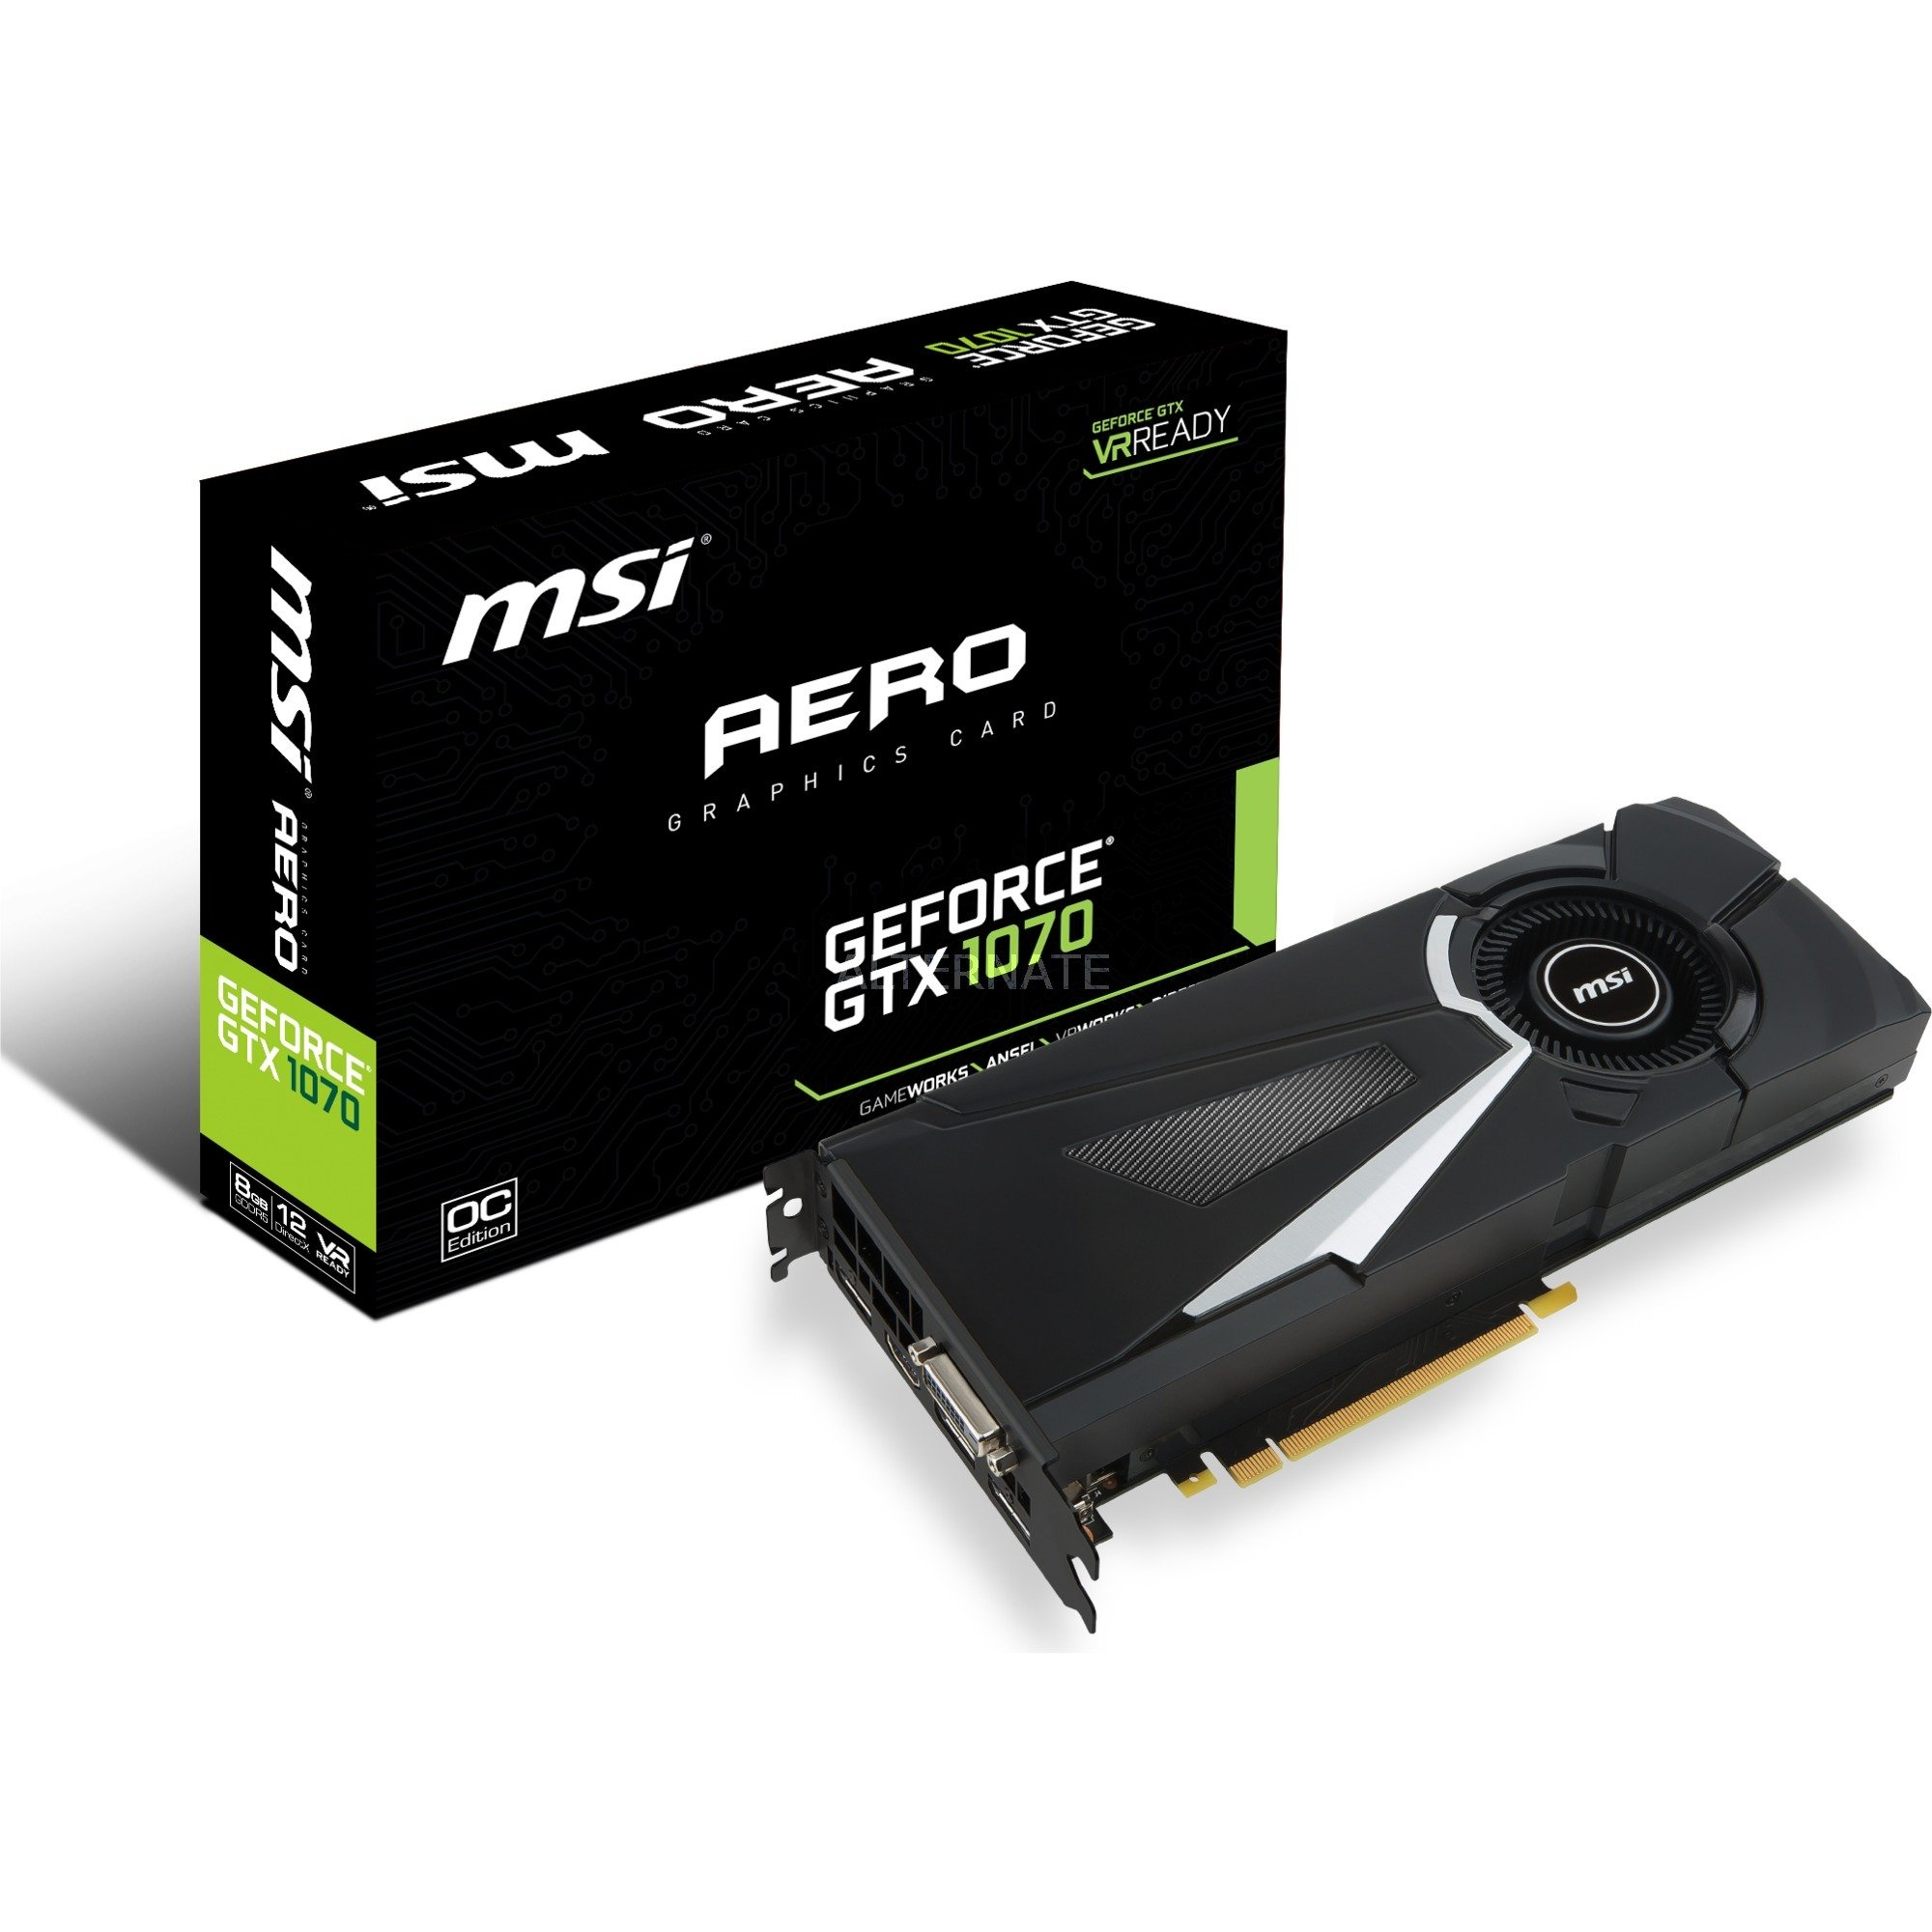 GeForce GTX 1070 AERO 8G OC, Carte graphique